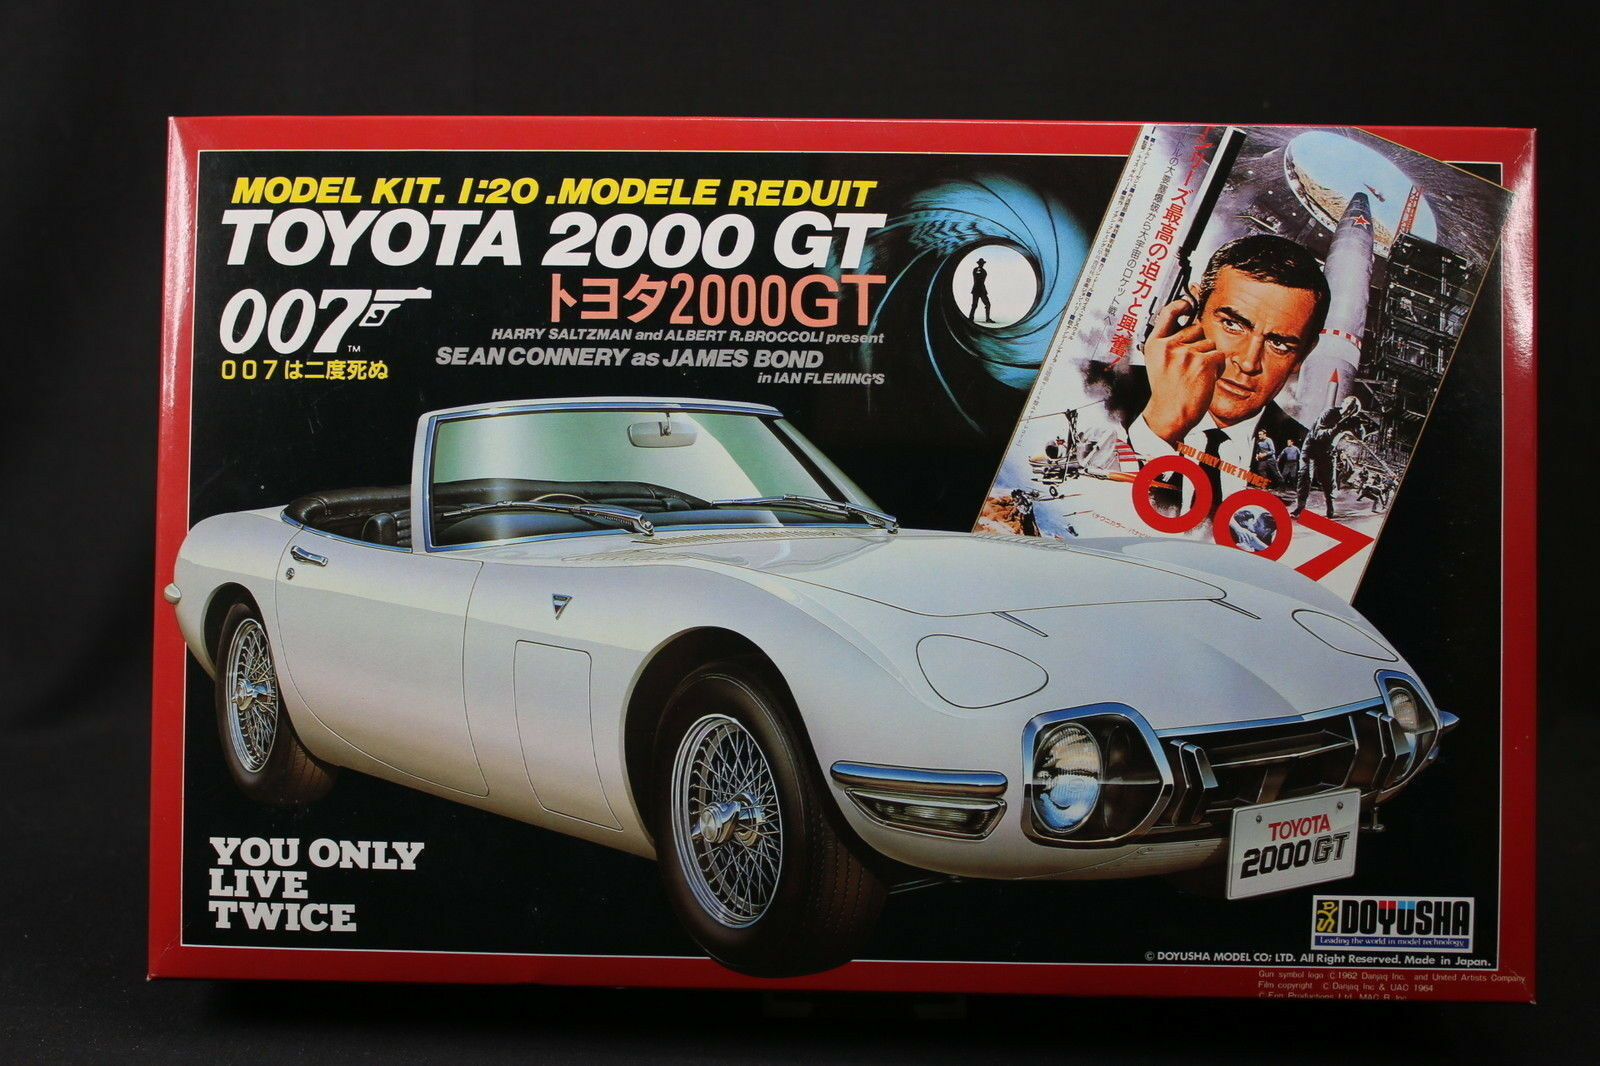 YW021 DOYUSHA 1 20 maquette voiture Toyota 2000 GT 007 You Only Live Twice Bond